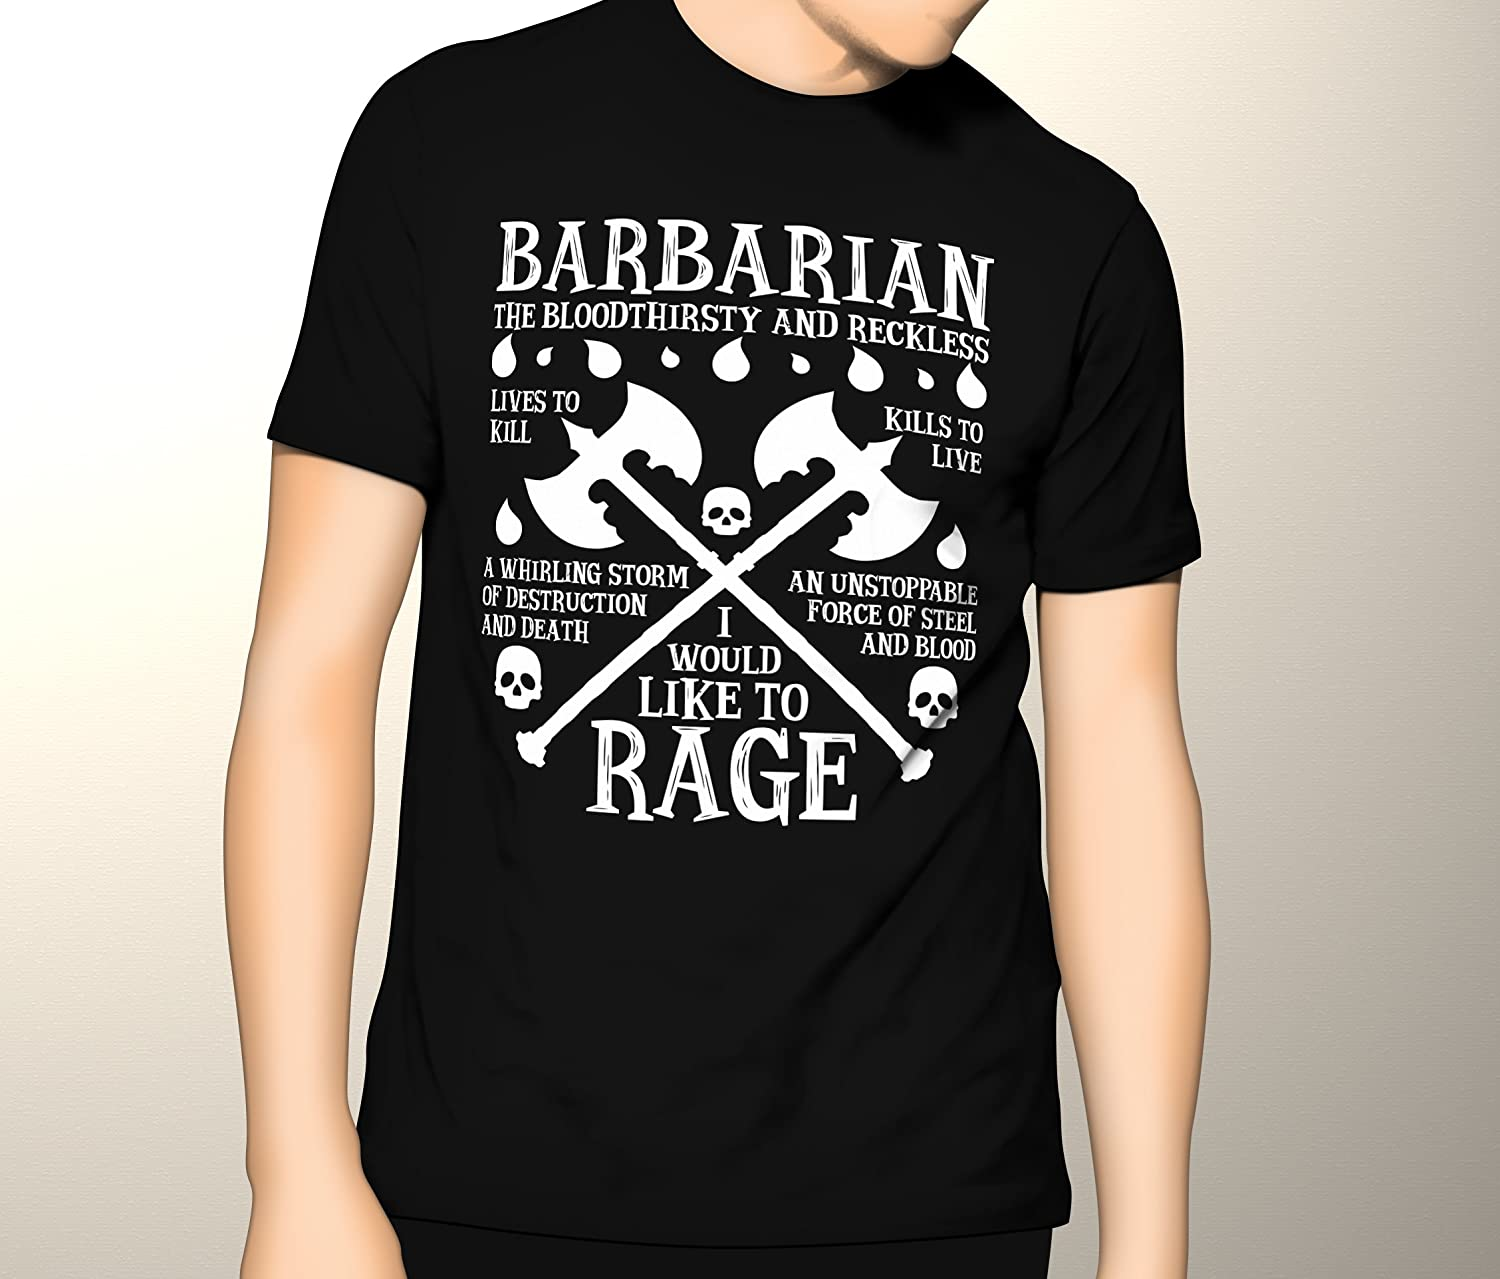 Dungeons and Dragons, DND, Barbarian, Bloodthirsty, Premium Men's Graphic T-shirt